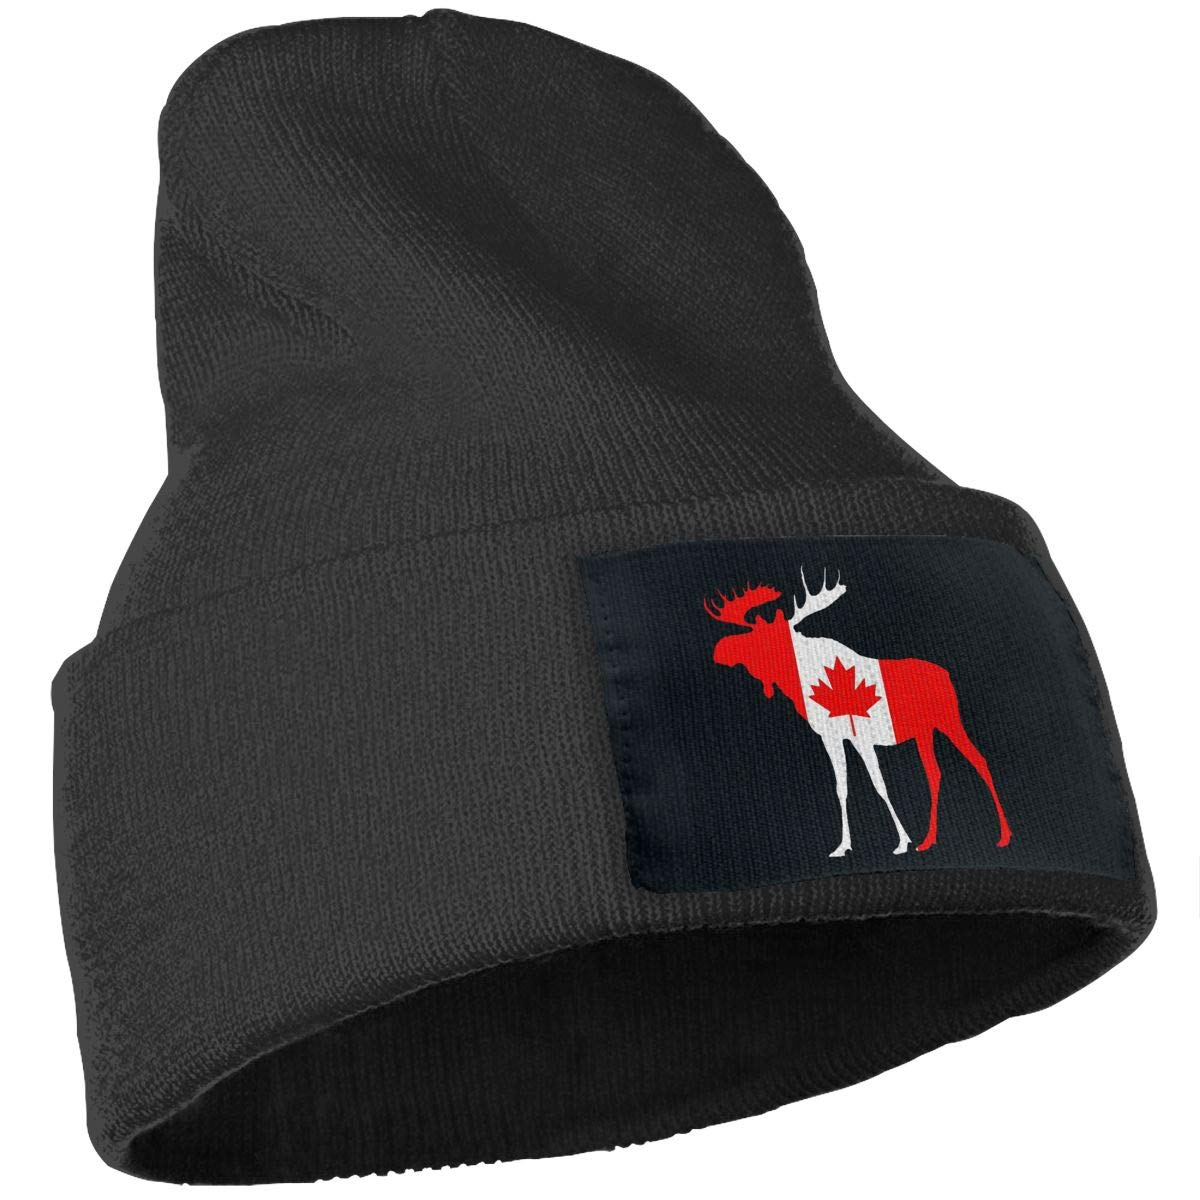 JimHappy Canada Flag Moose Winter Warm Hats,Knit Slouchy Thick Skull Cap Black